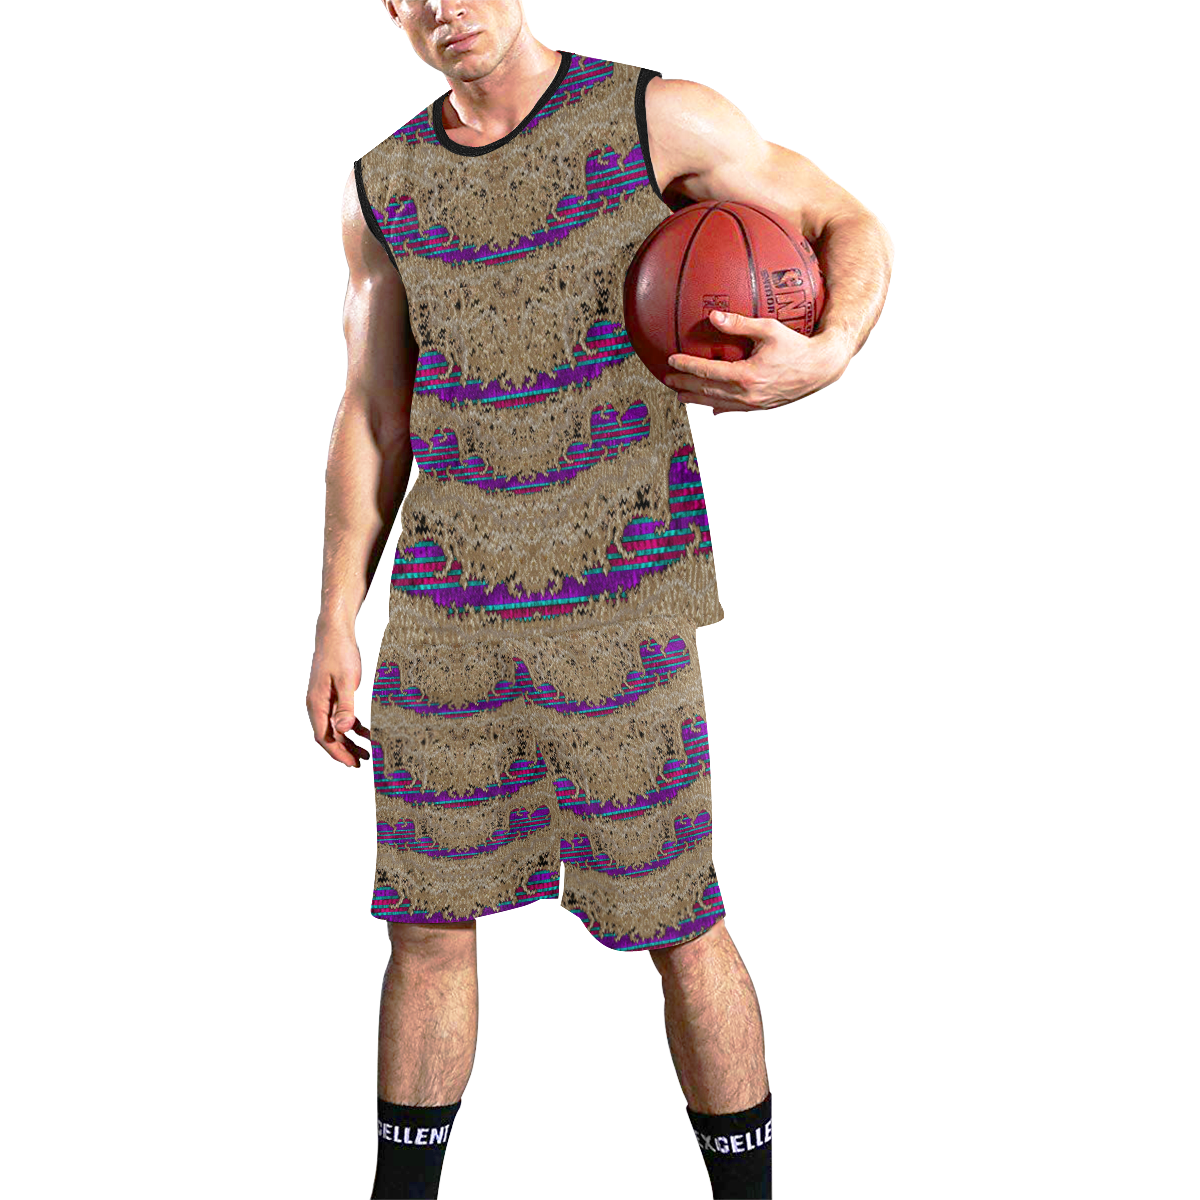 Pearl lace and smiles in peacock style All Over Print Basketball Uniform